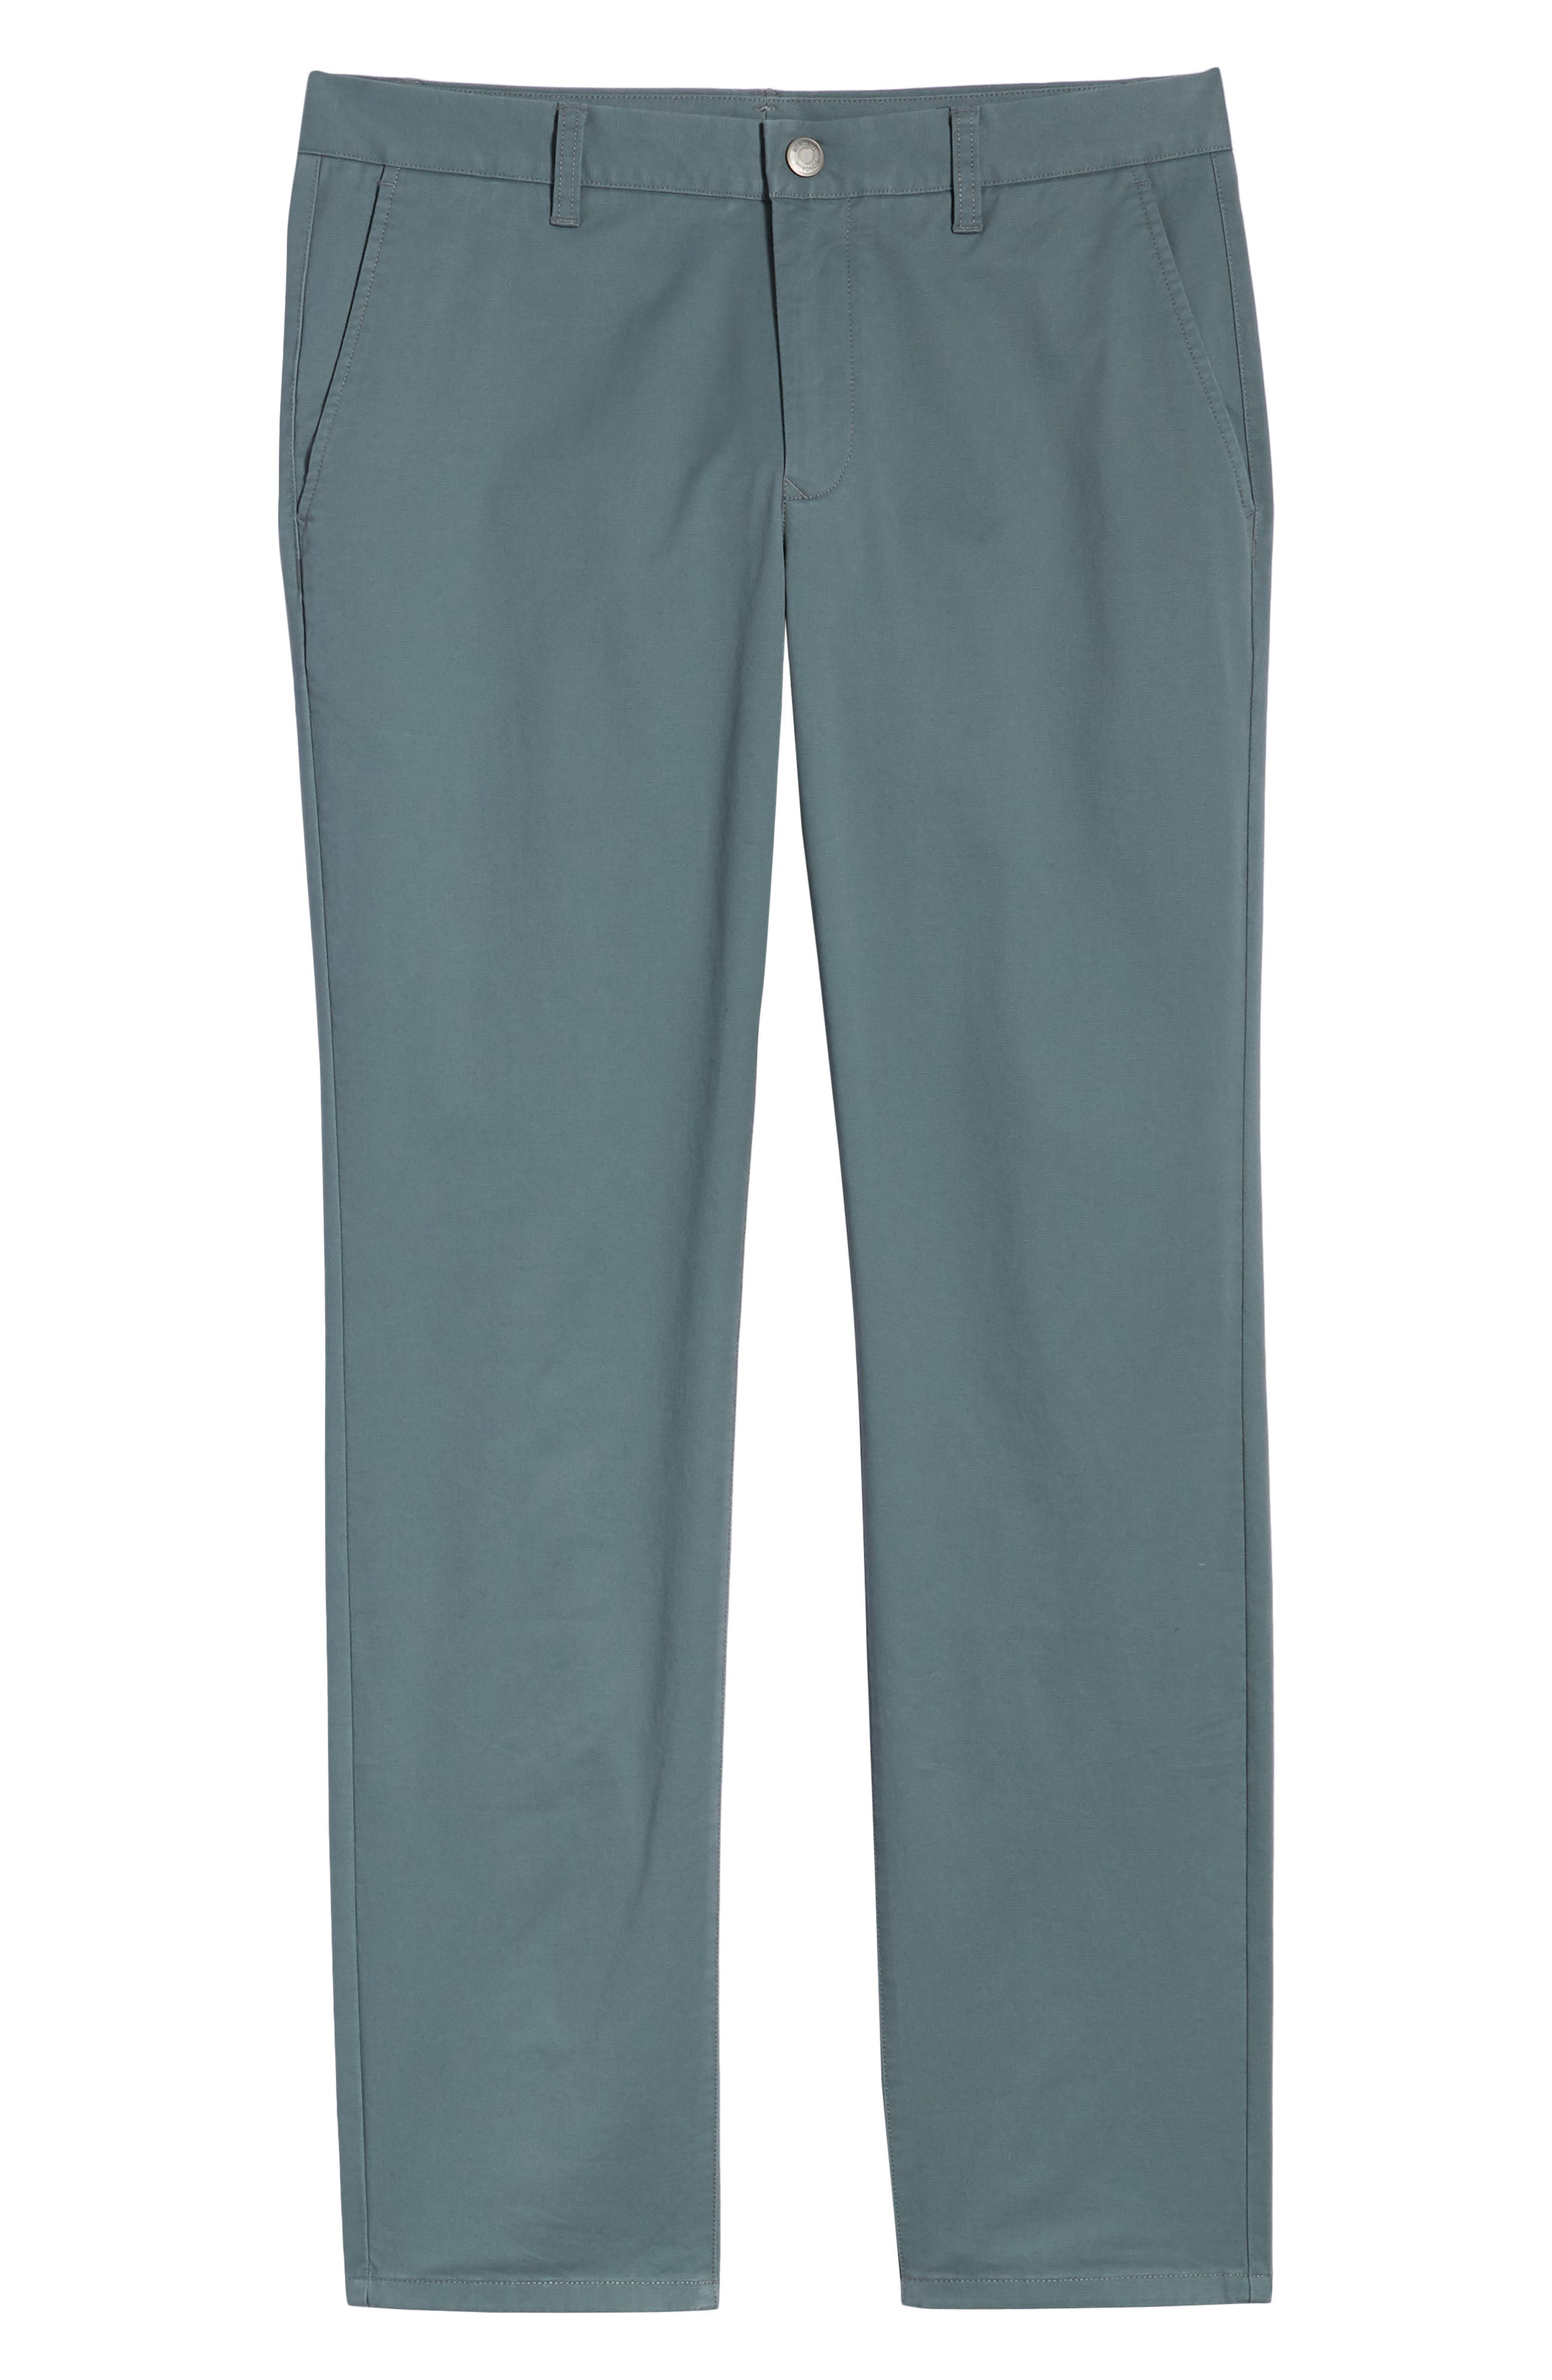 BONOBOS, Slim Fit Stretch Washed Chinos, Alternate thumbnail 7, color, NOPALES